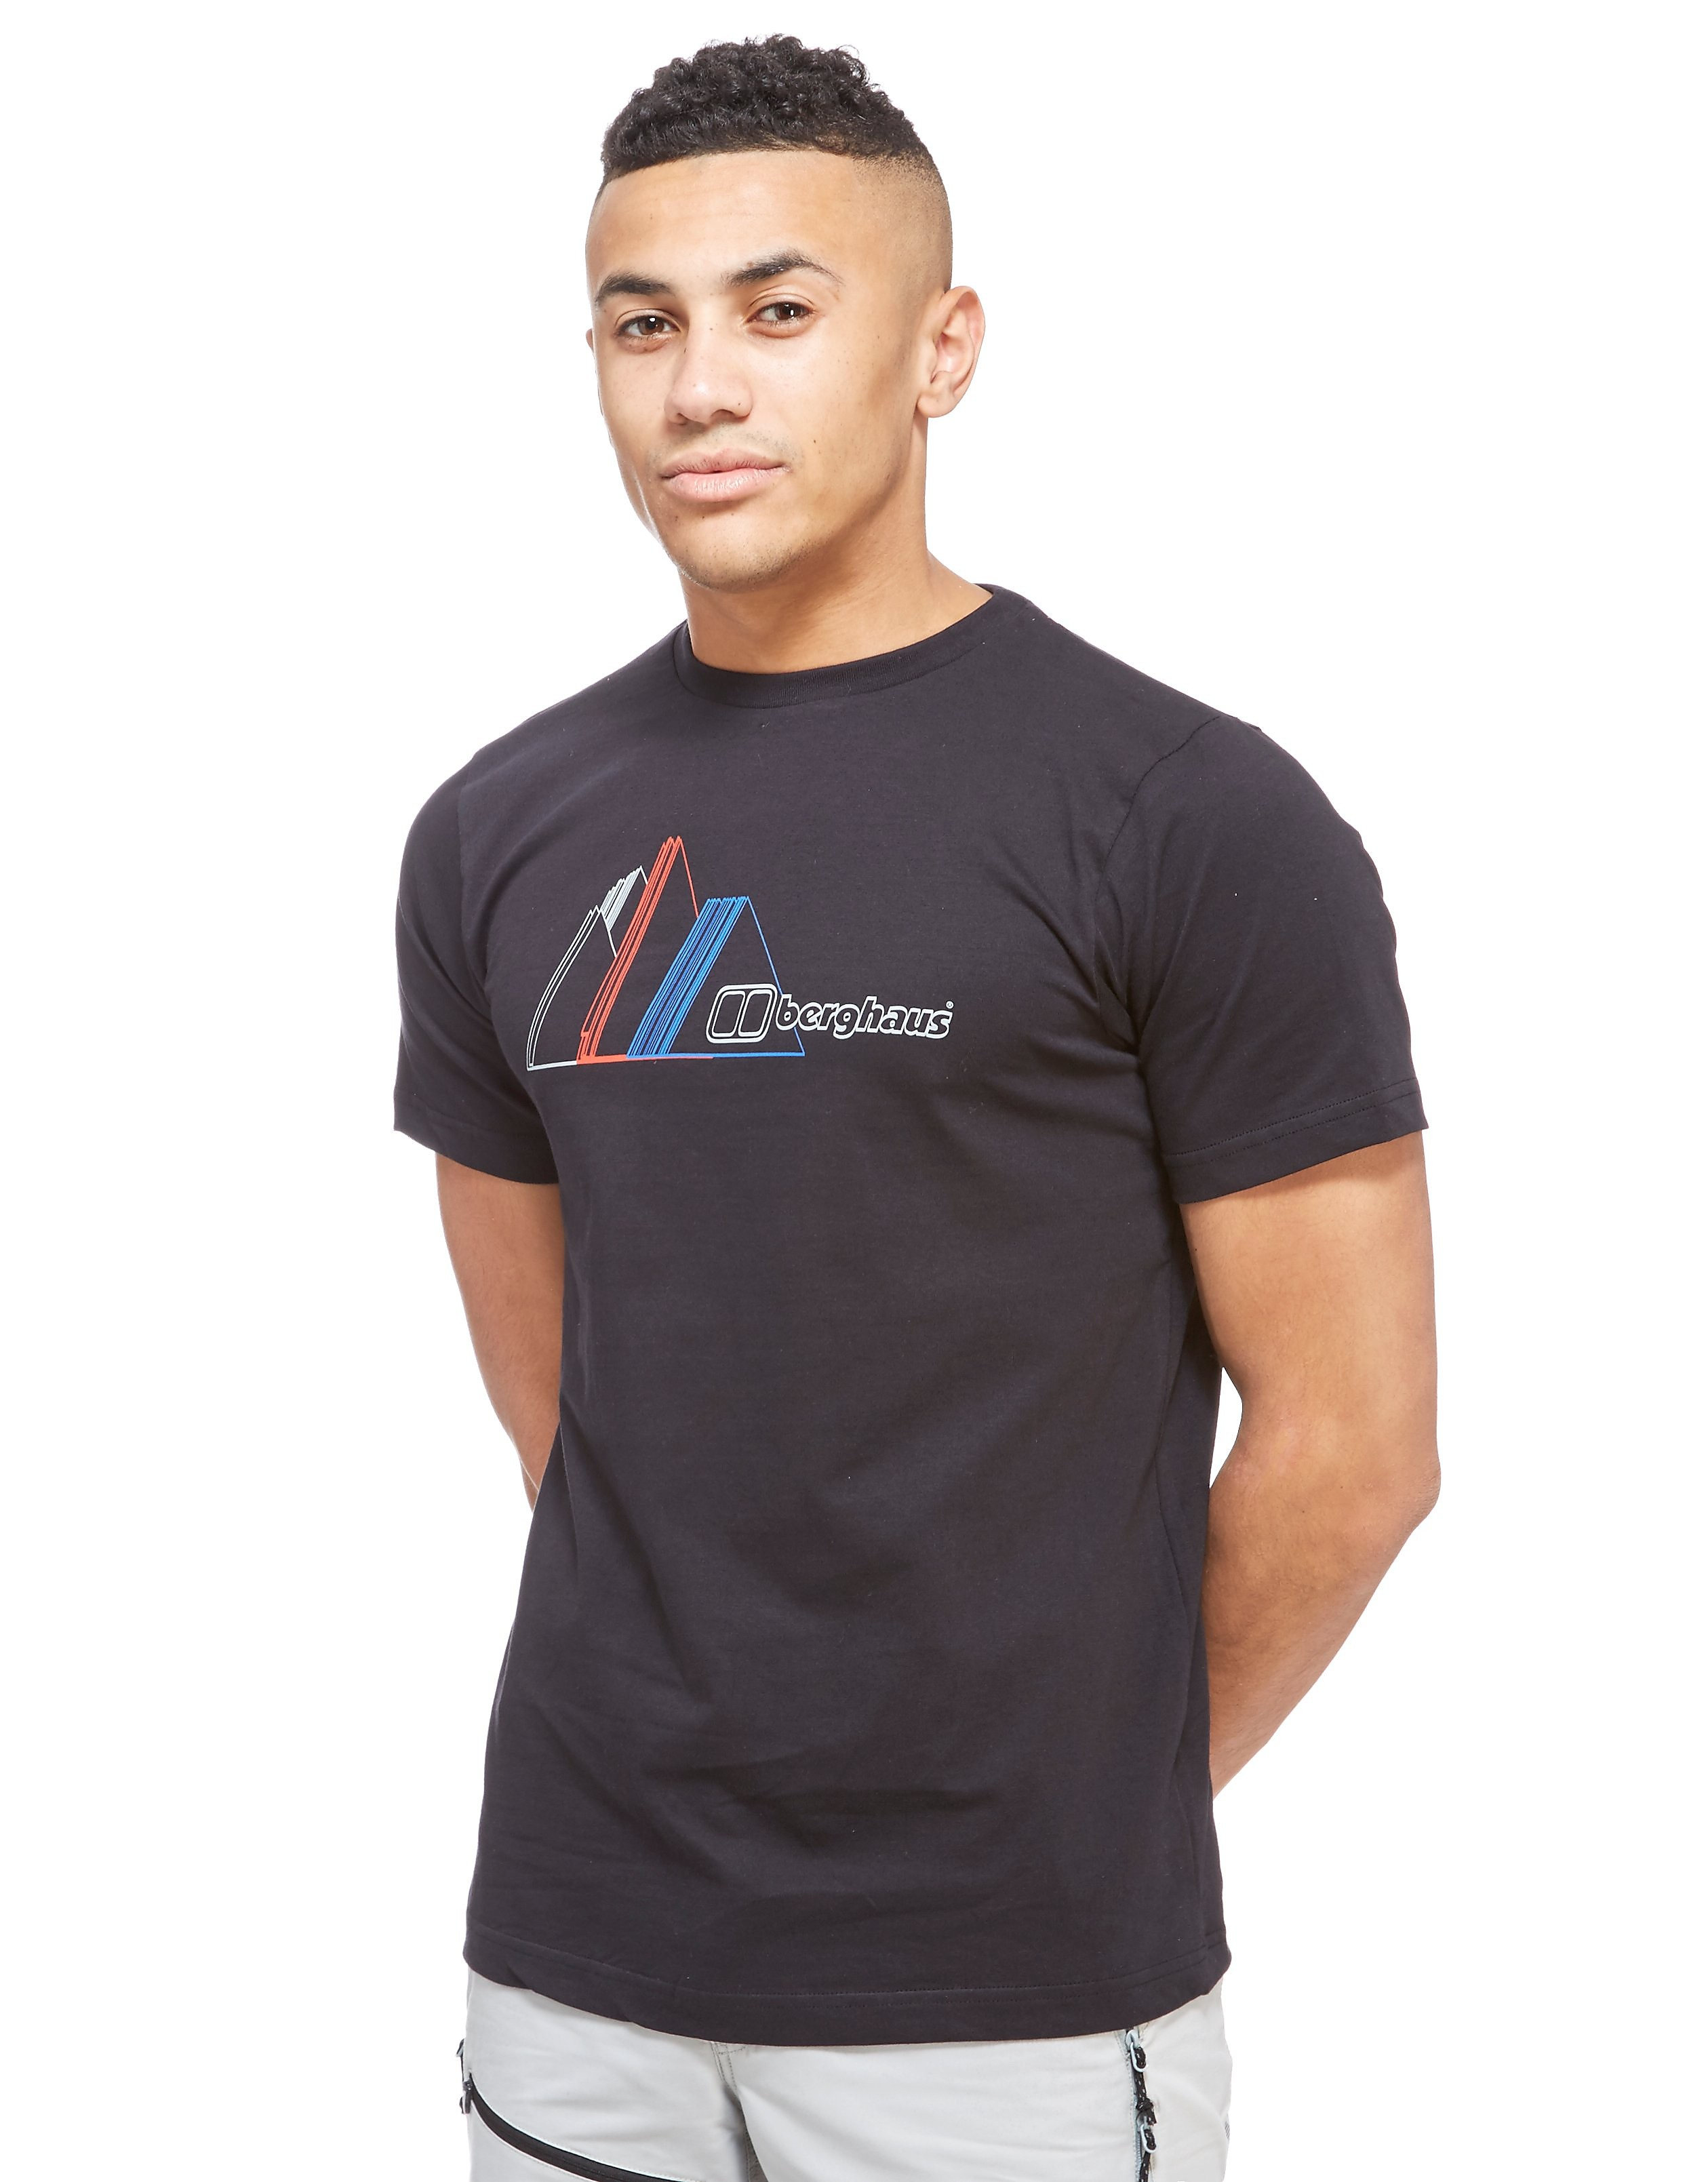 Berghaus Mountain 14 T-Shirt